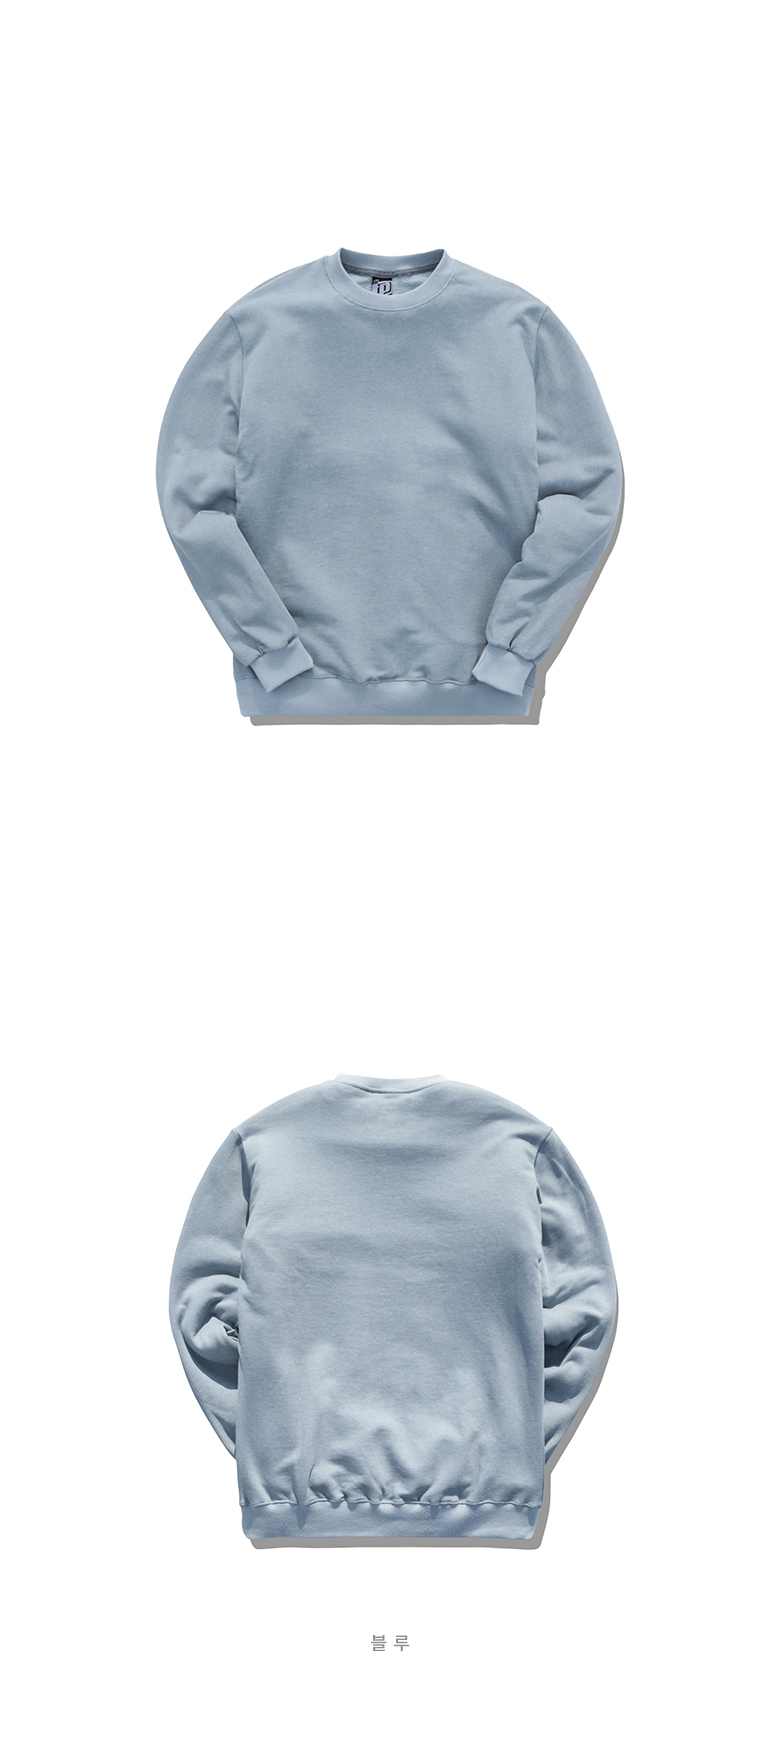 20180912_fp_pigment_sweatshirt_blue_uk_01.jpg